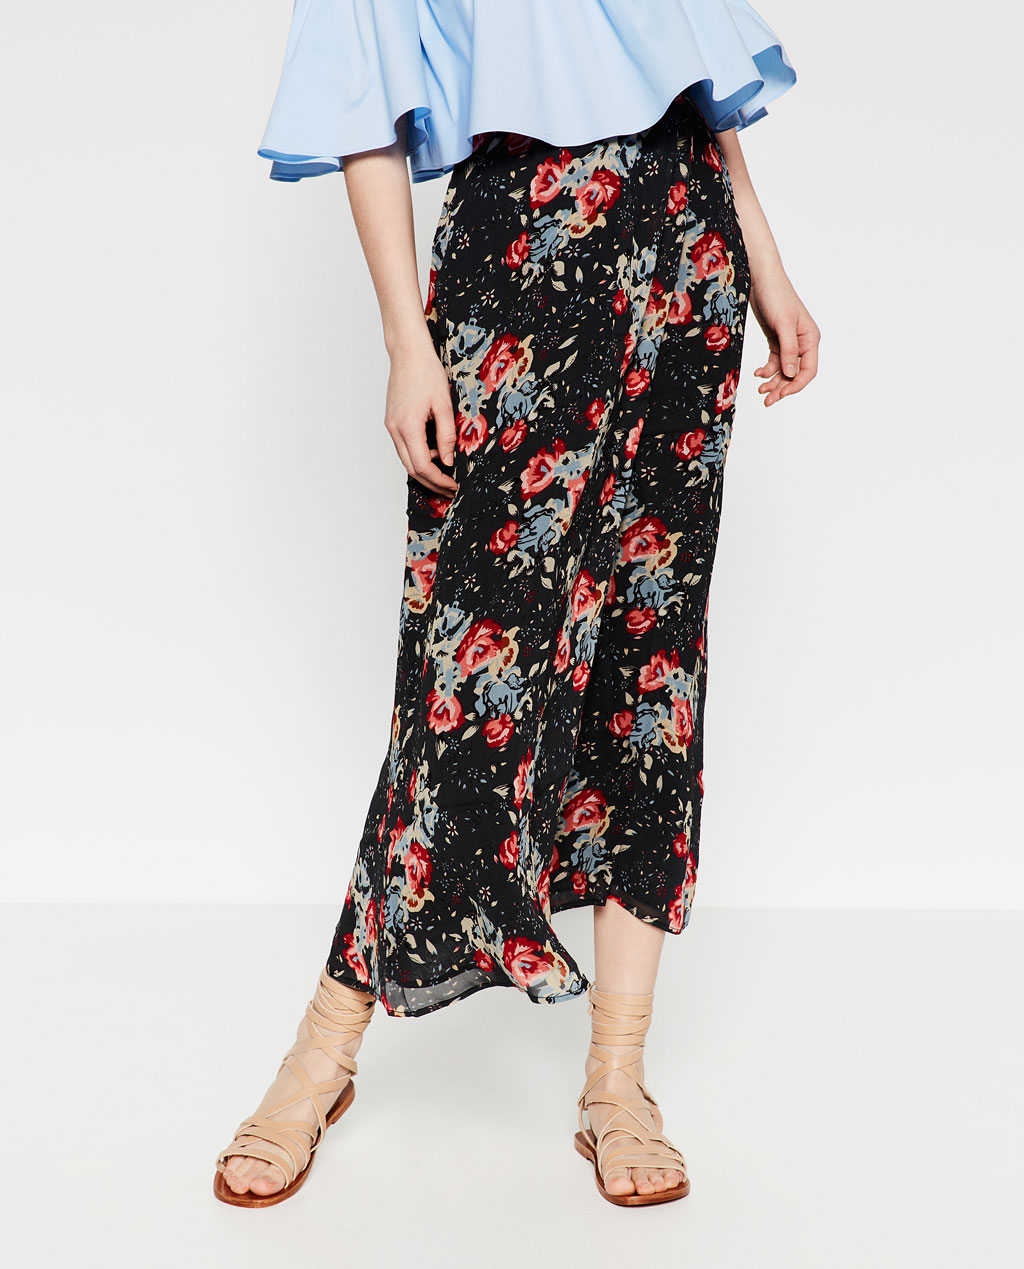 ZARA Long Printed Skirt 39.99 GBR